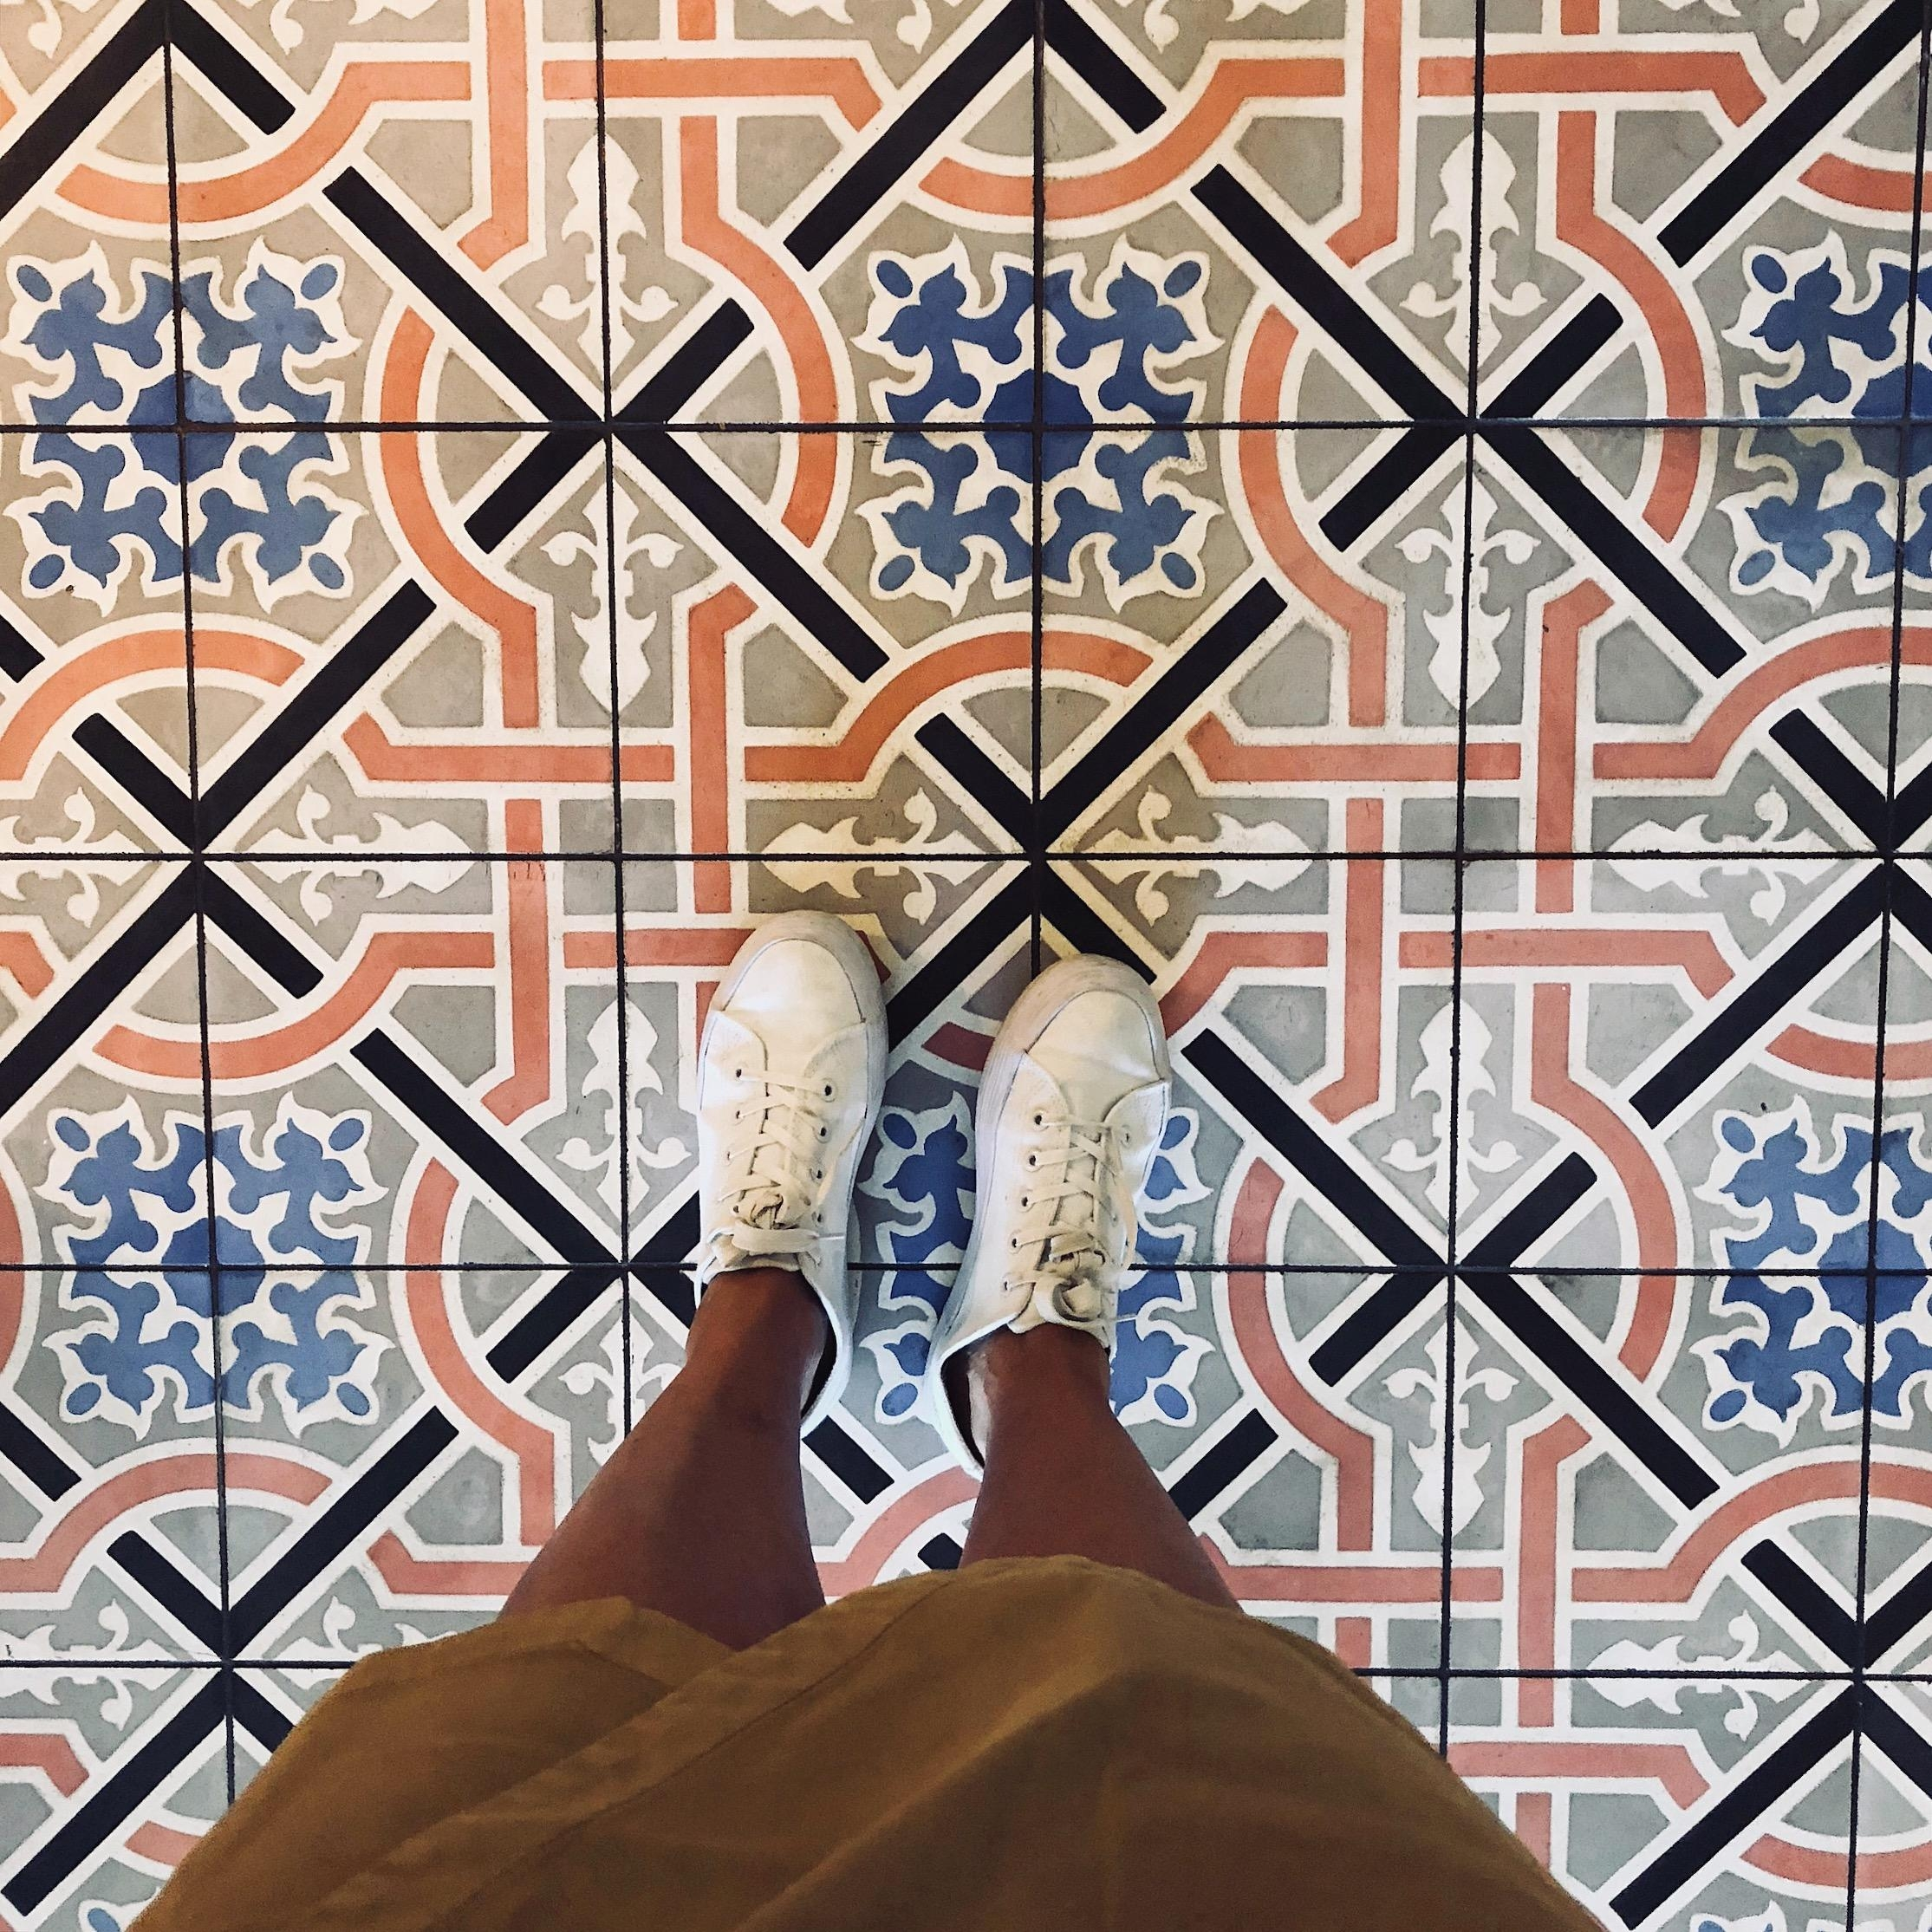 #fliesenliebe #fromwhereistand #muster #tiles #retro #floor #happyfeet #interiordesign